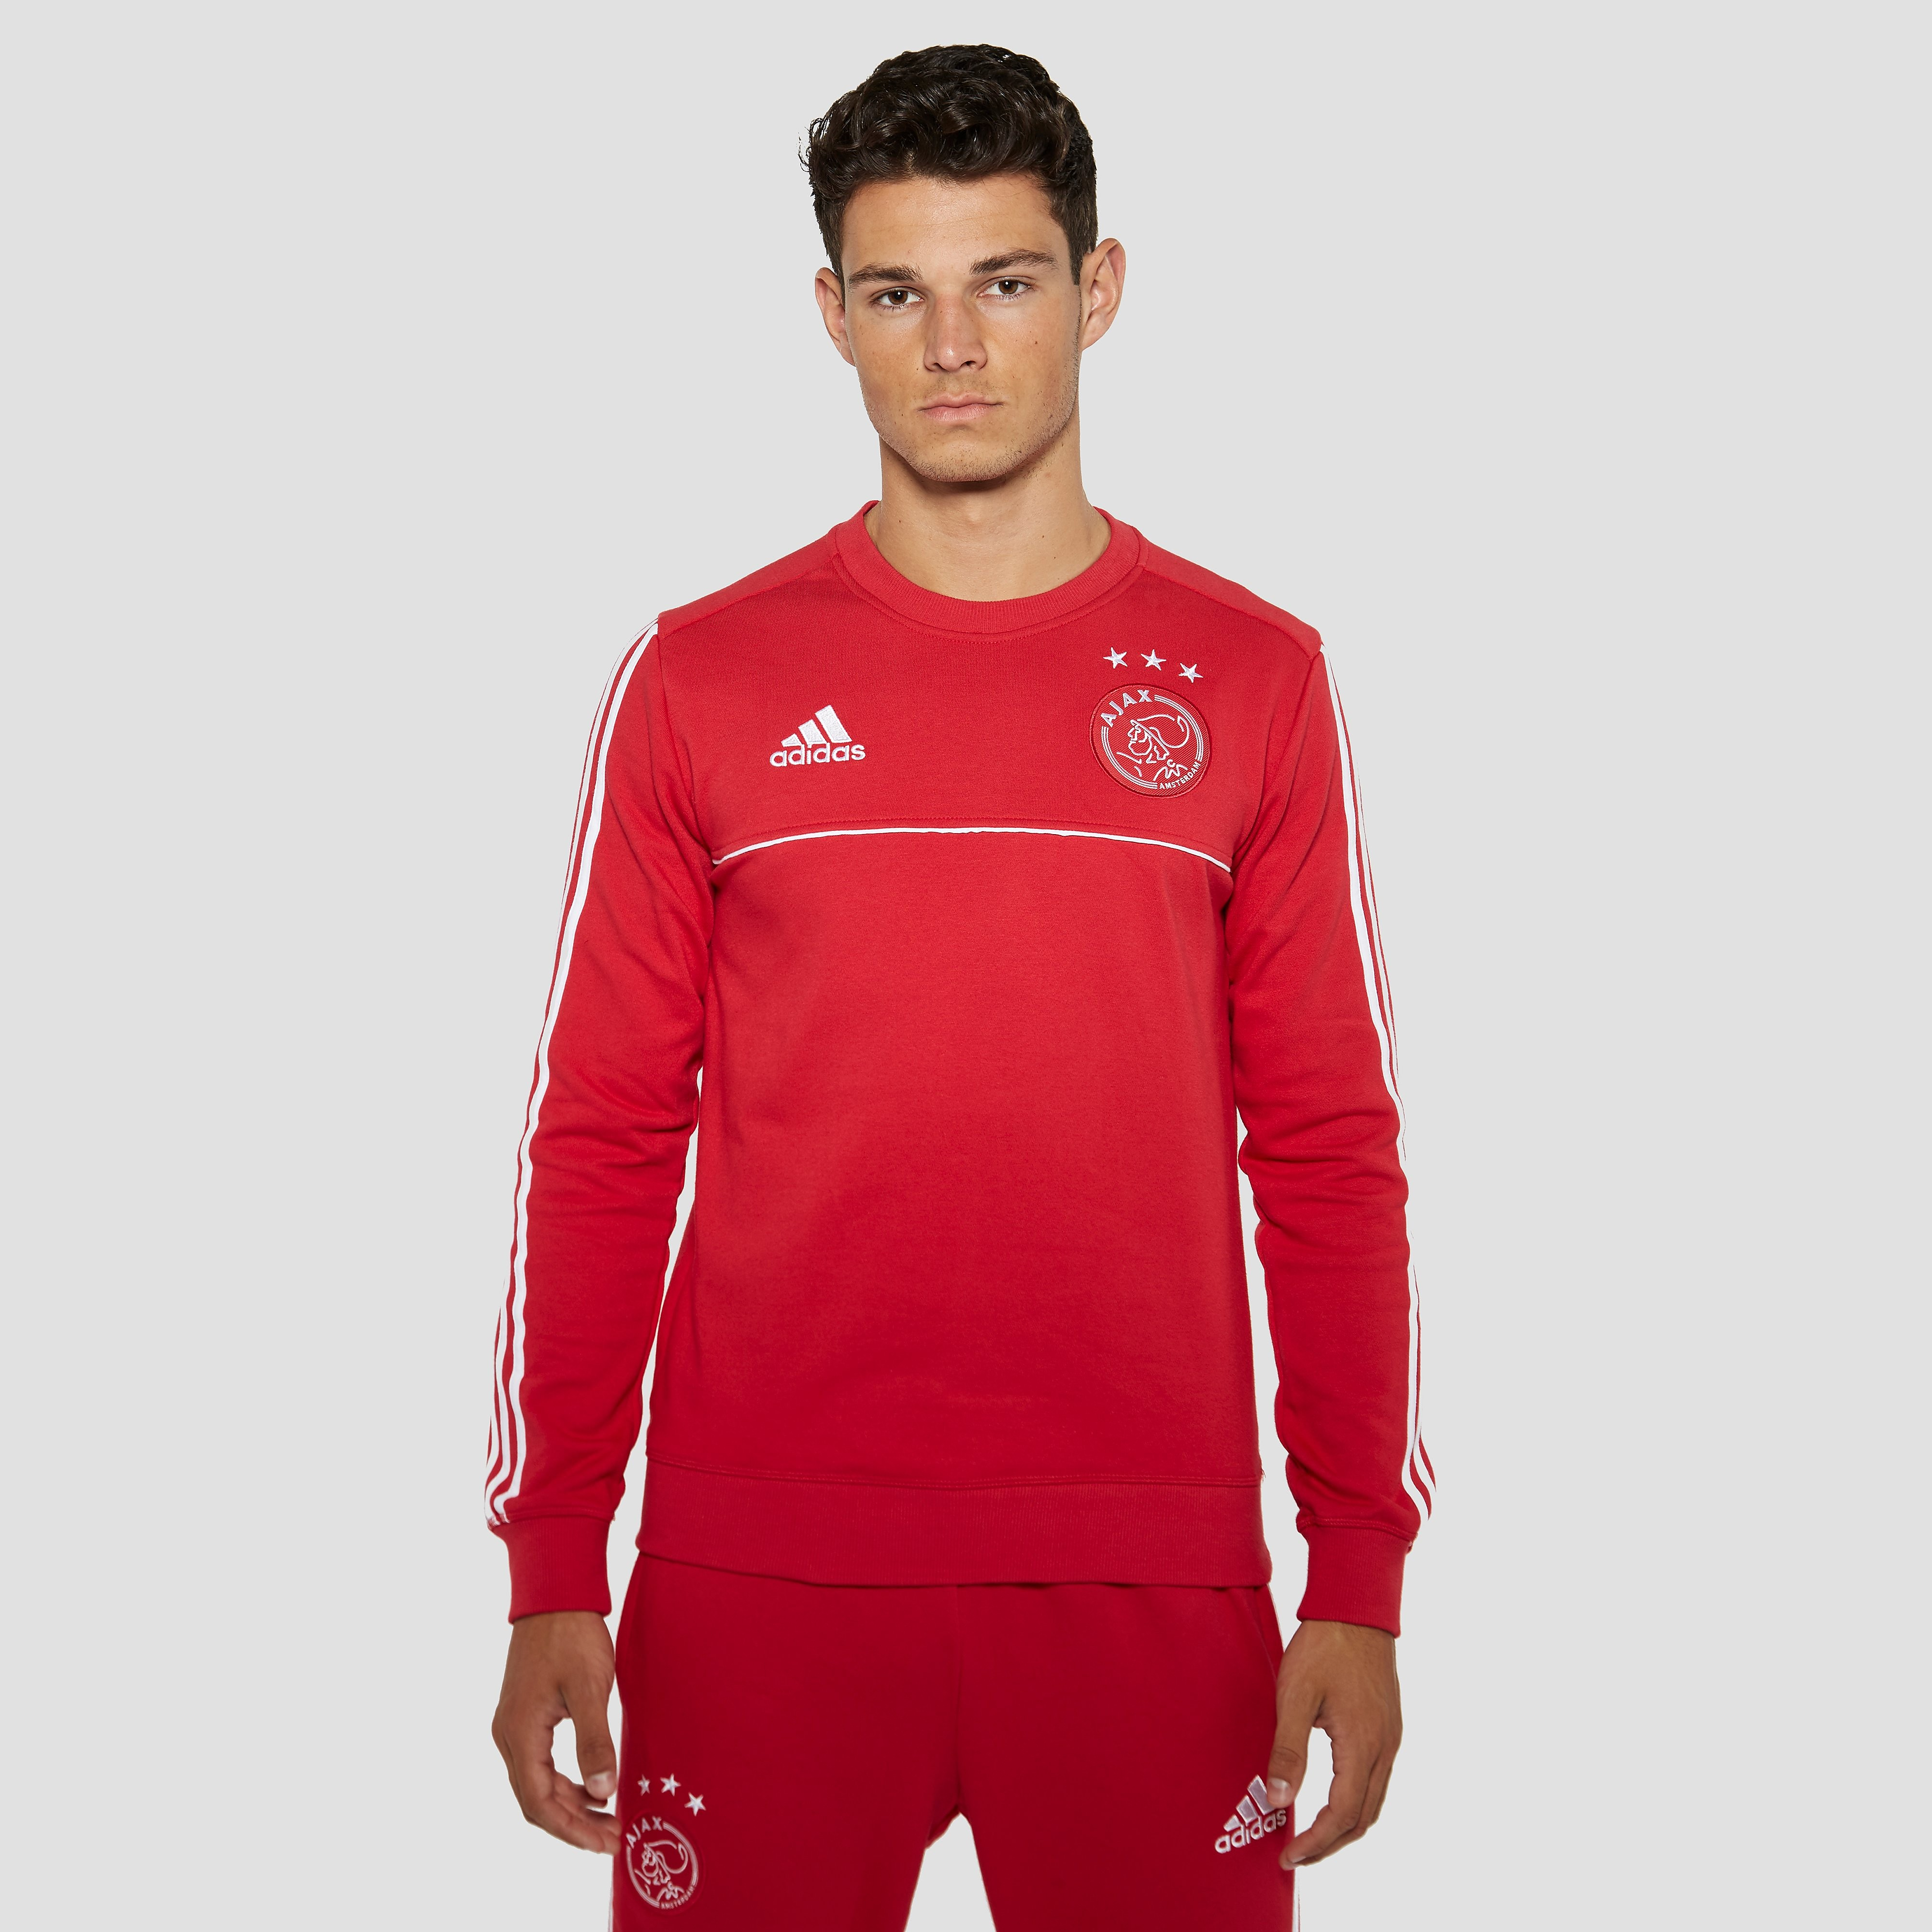 ADIDAS AJAX THUIS SWEATER